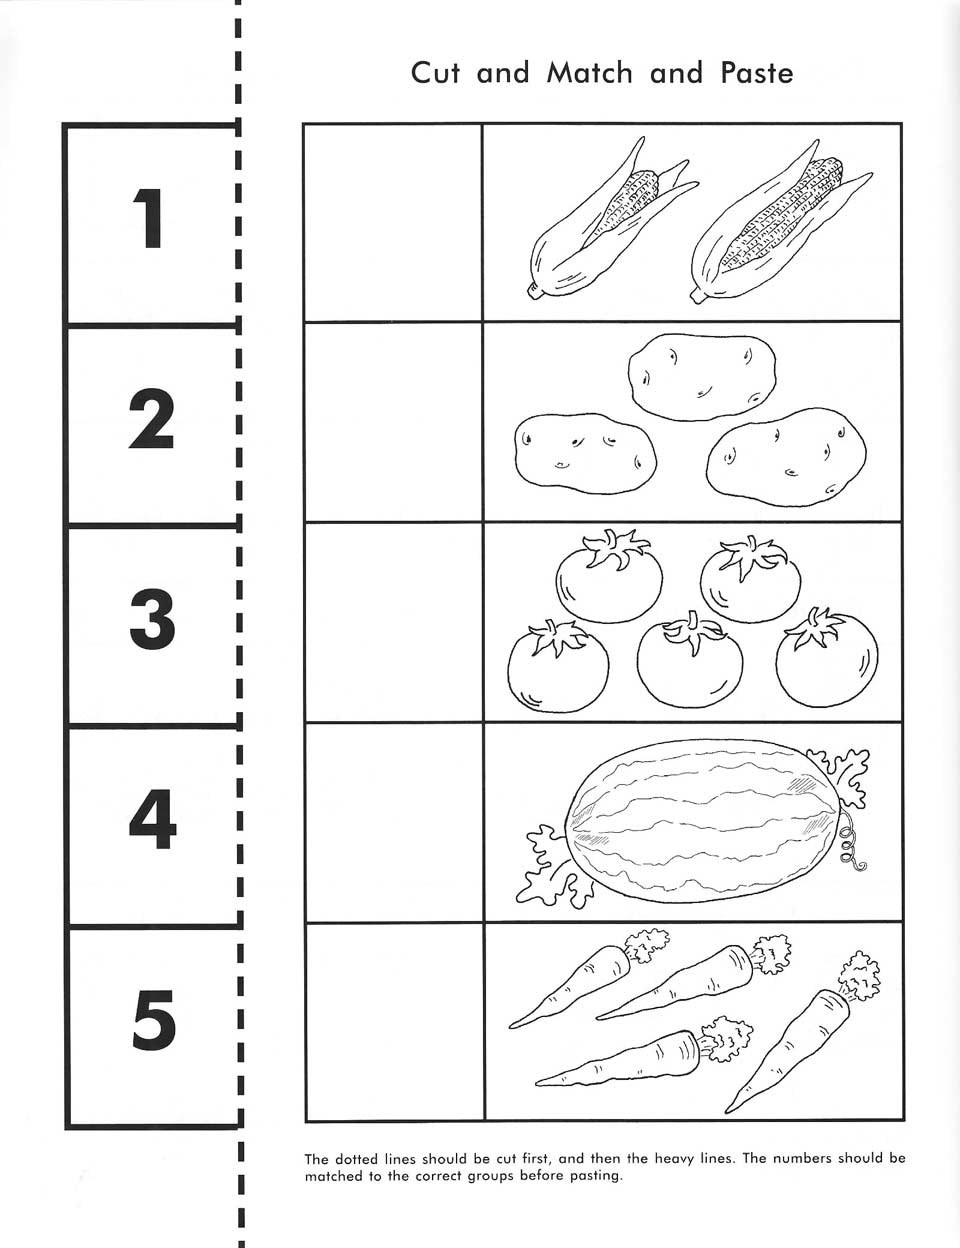 Cut, Count, Match And Paste   Free Printable